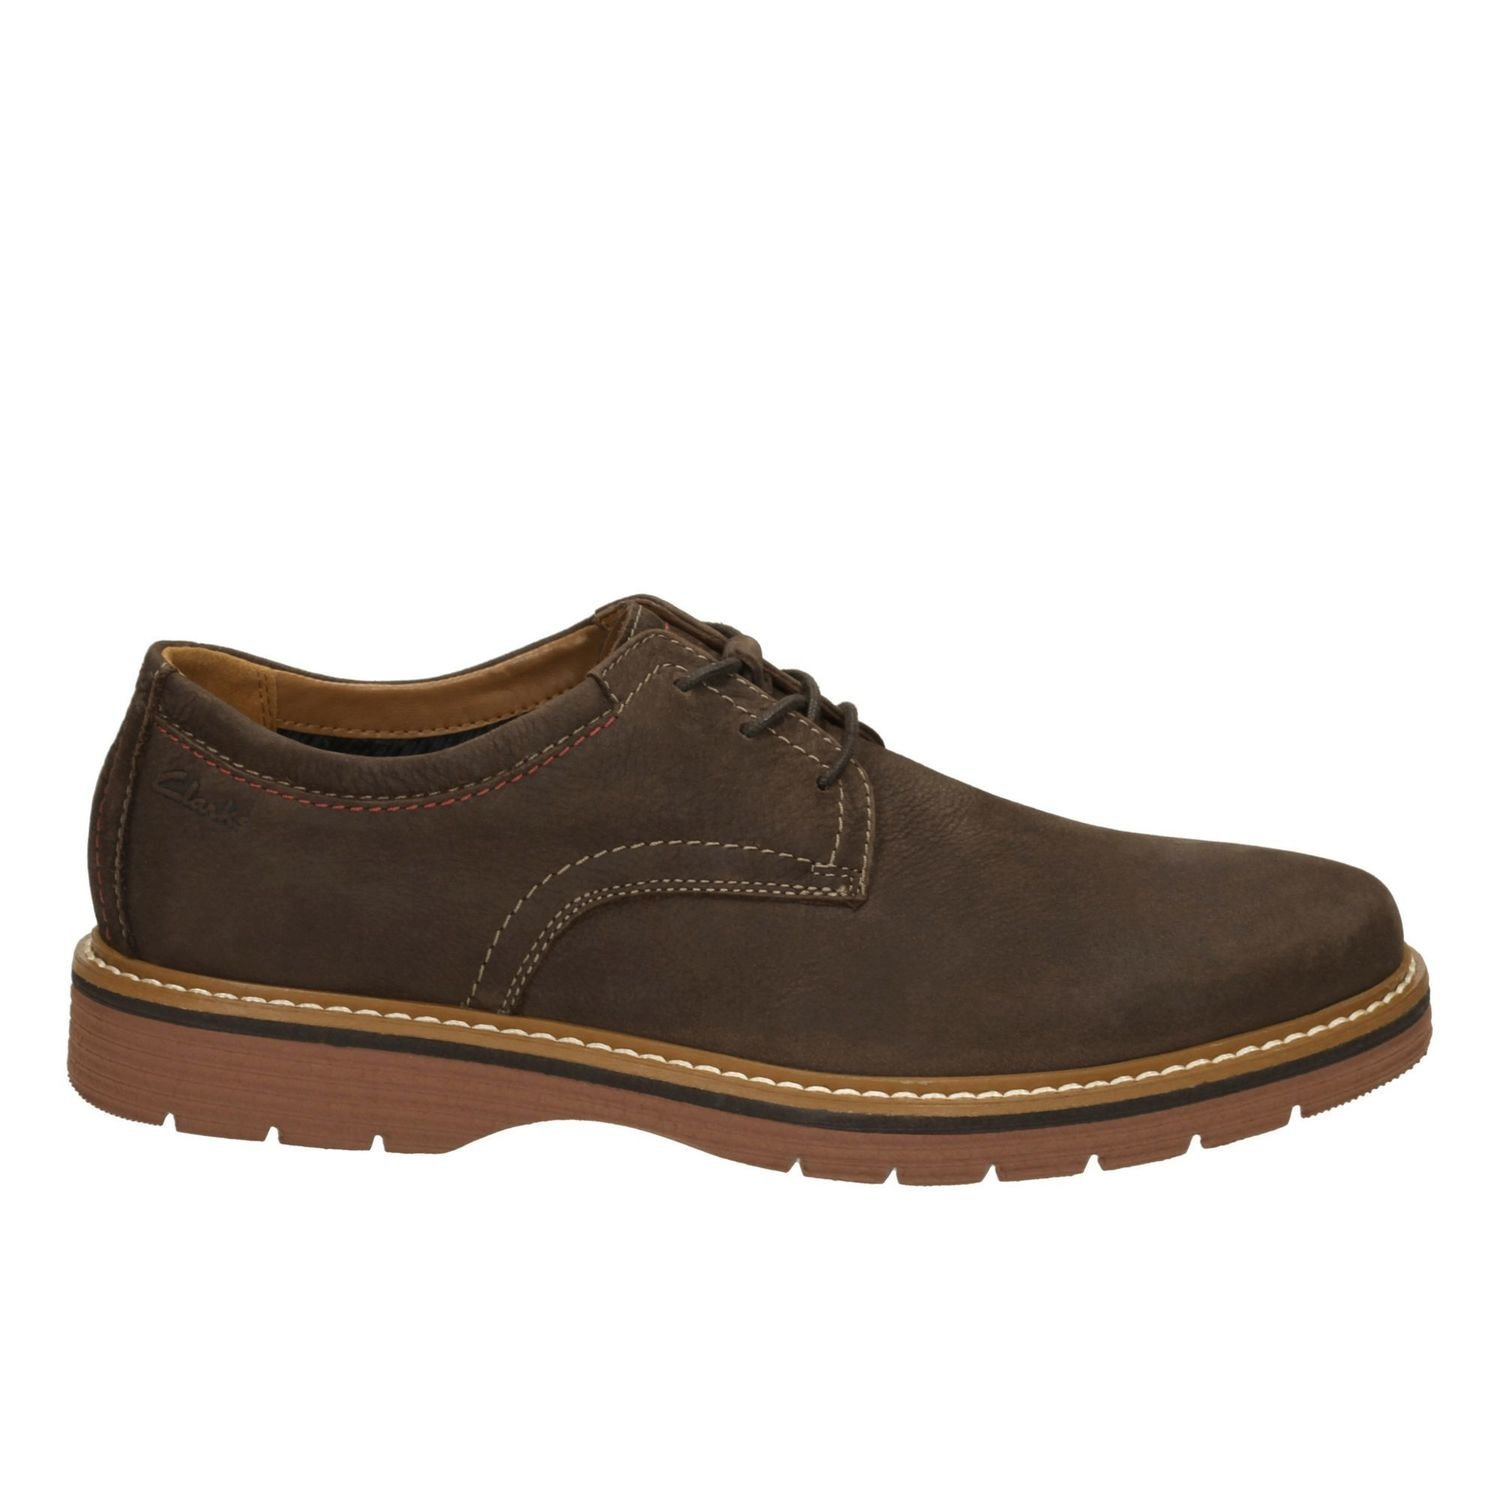 Zapatos Newkirk Plain Nobuck Marron Oscuro TN-2380215